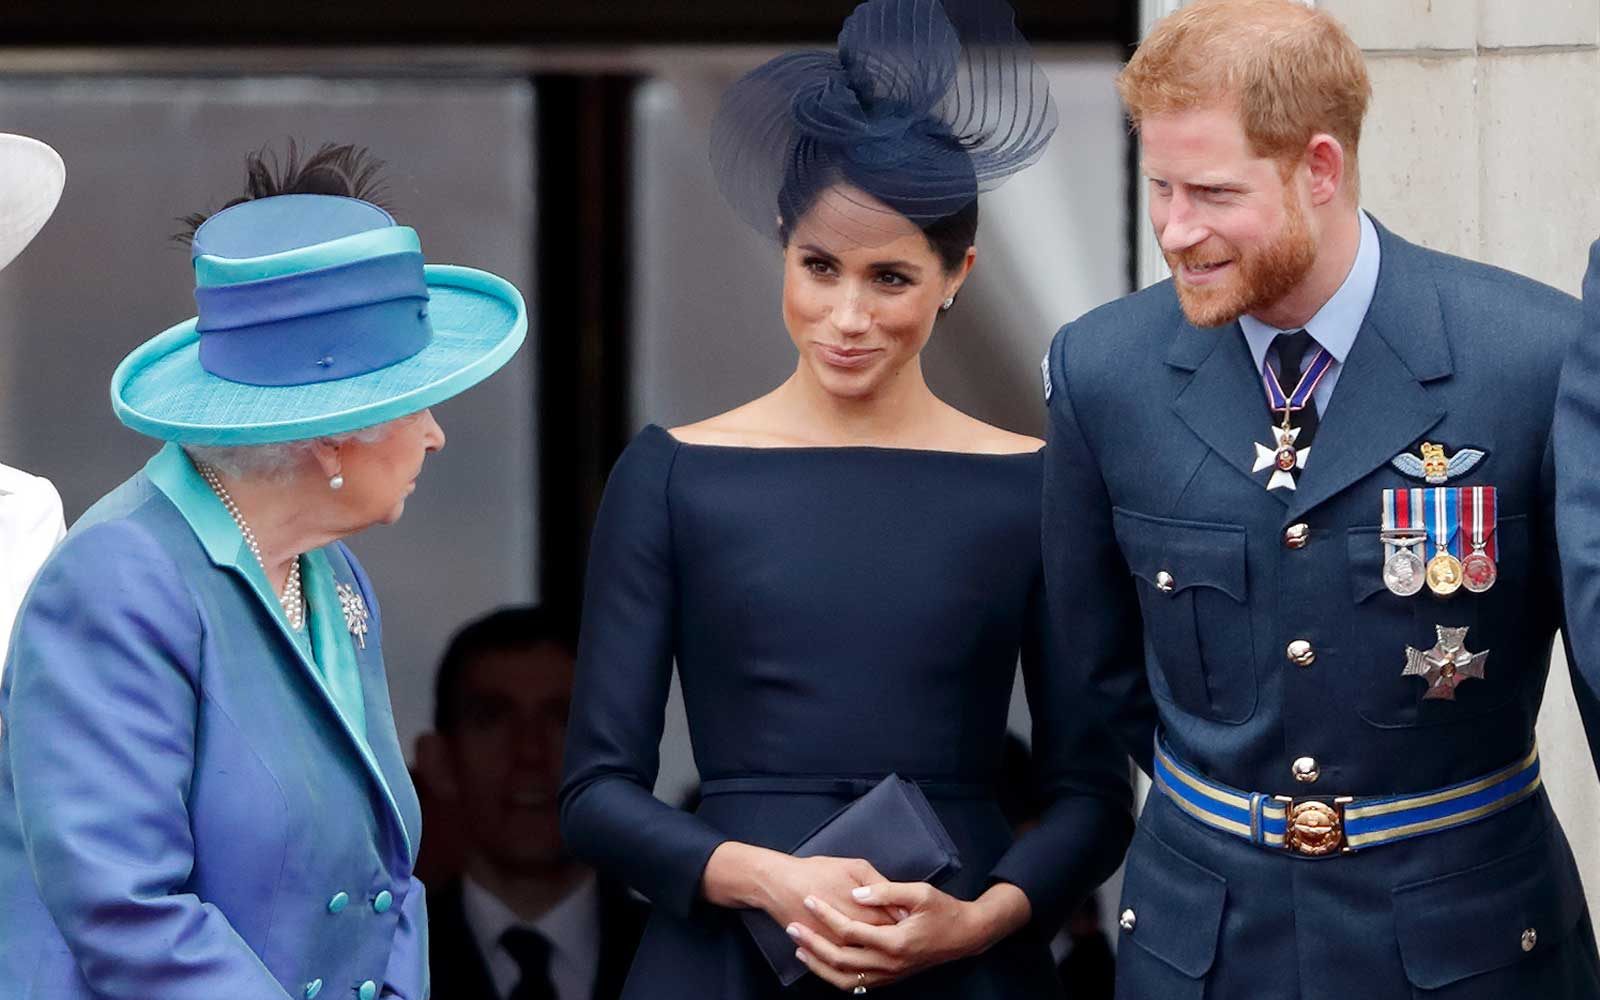 Prince Harry and Meghan Markle Are Taking a Summer Vacation With the Queen